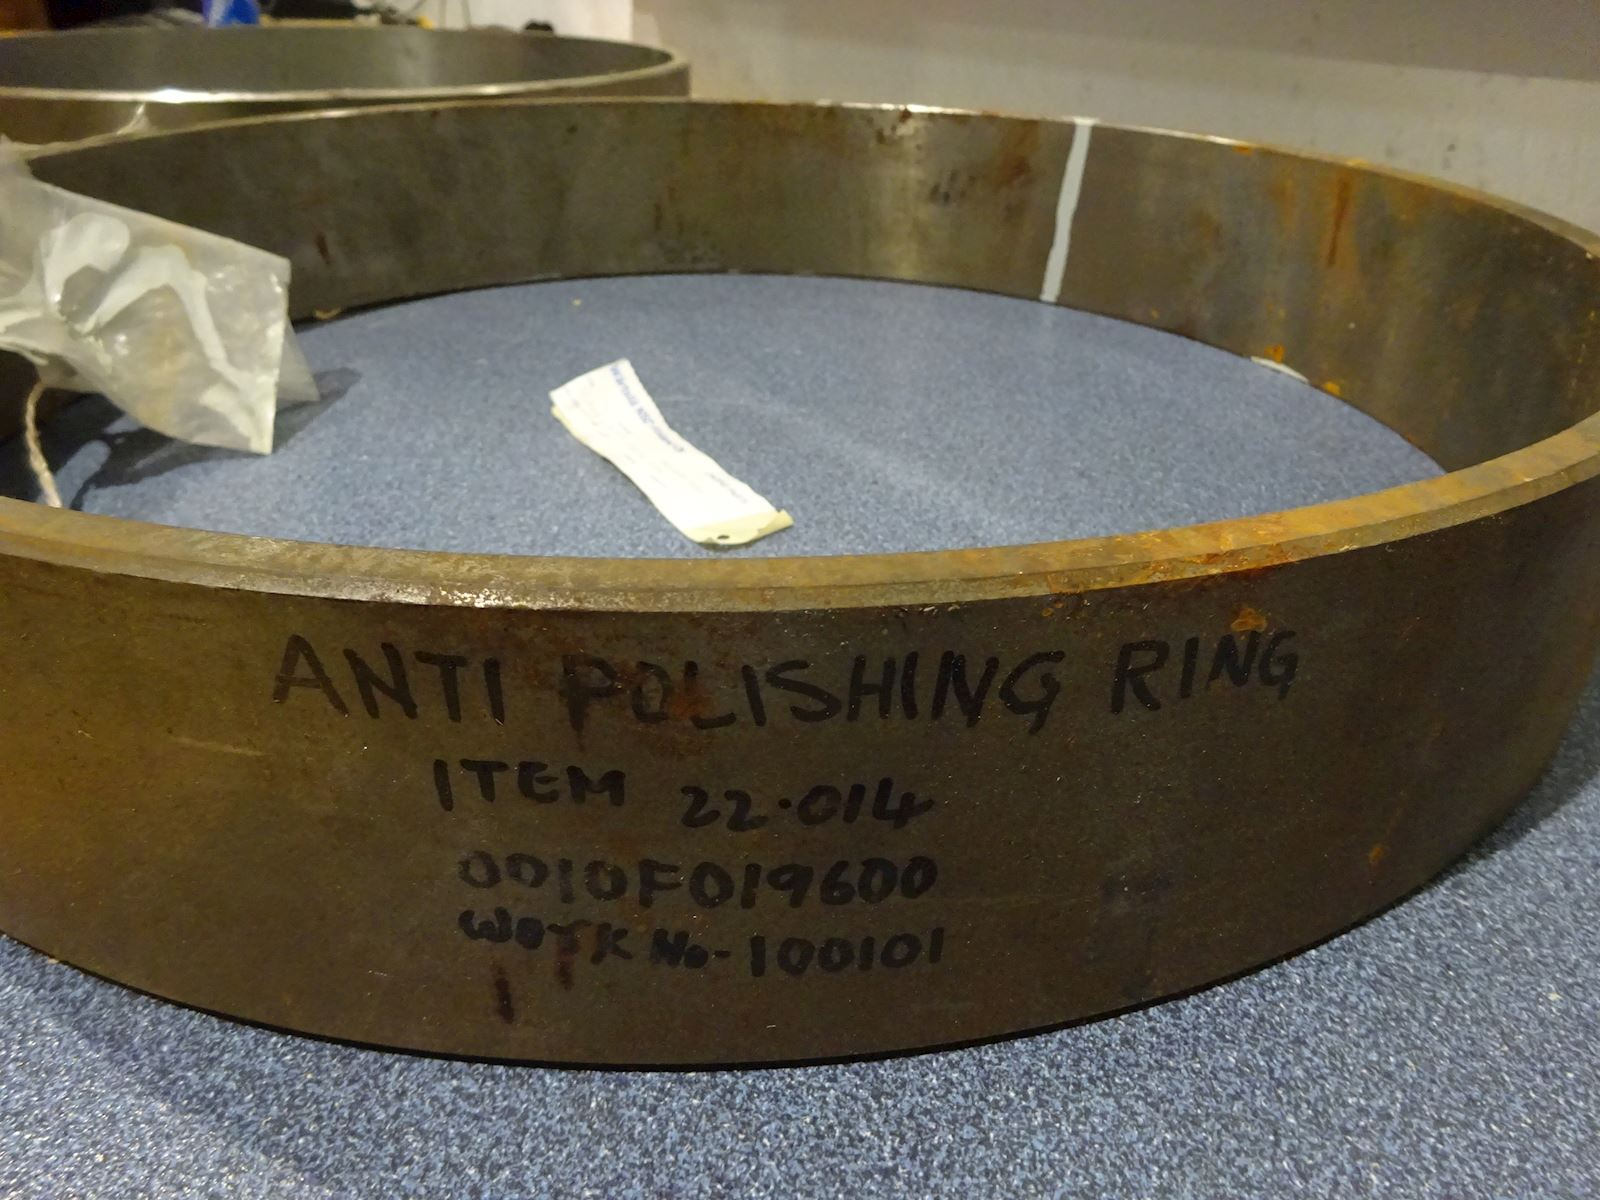 Wärtsila Antipolishing ring 100101